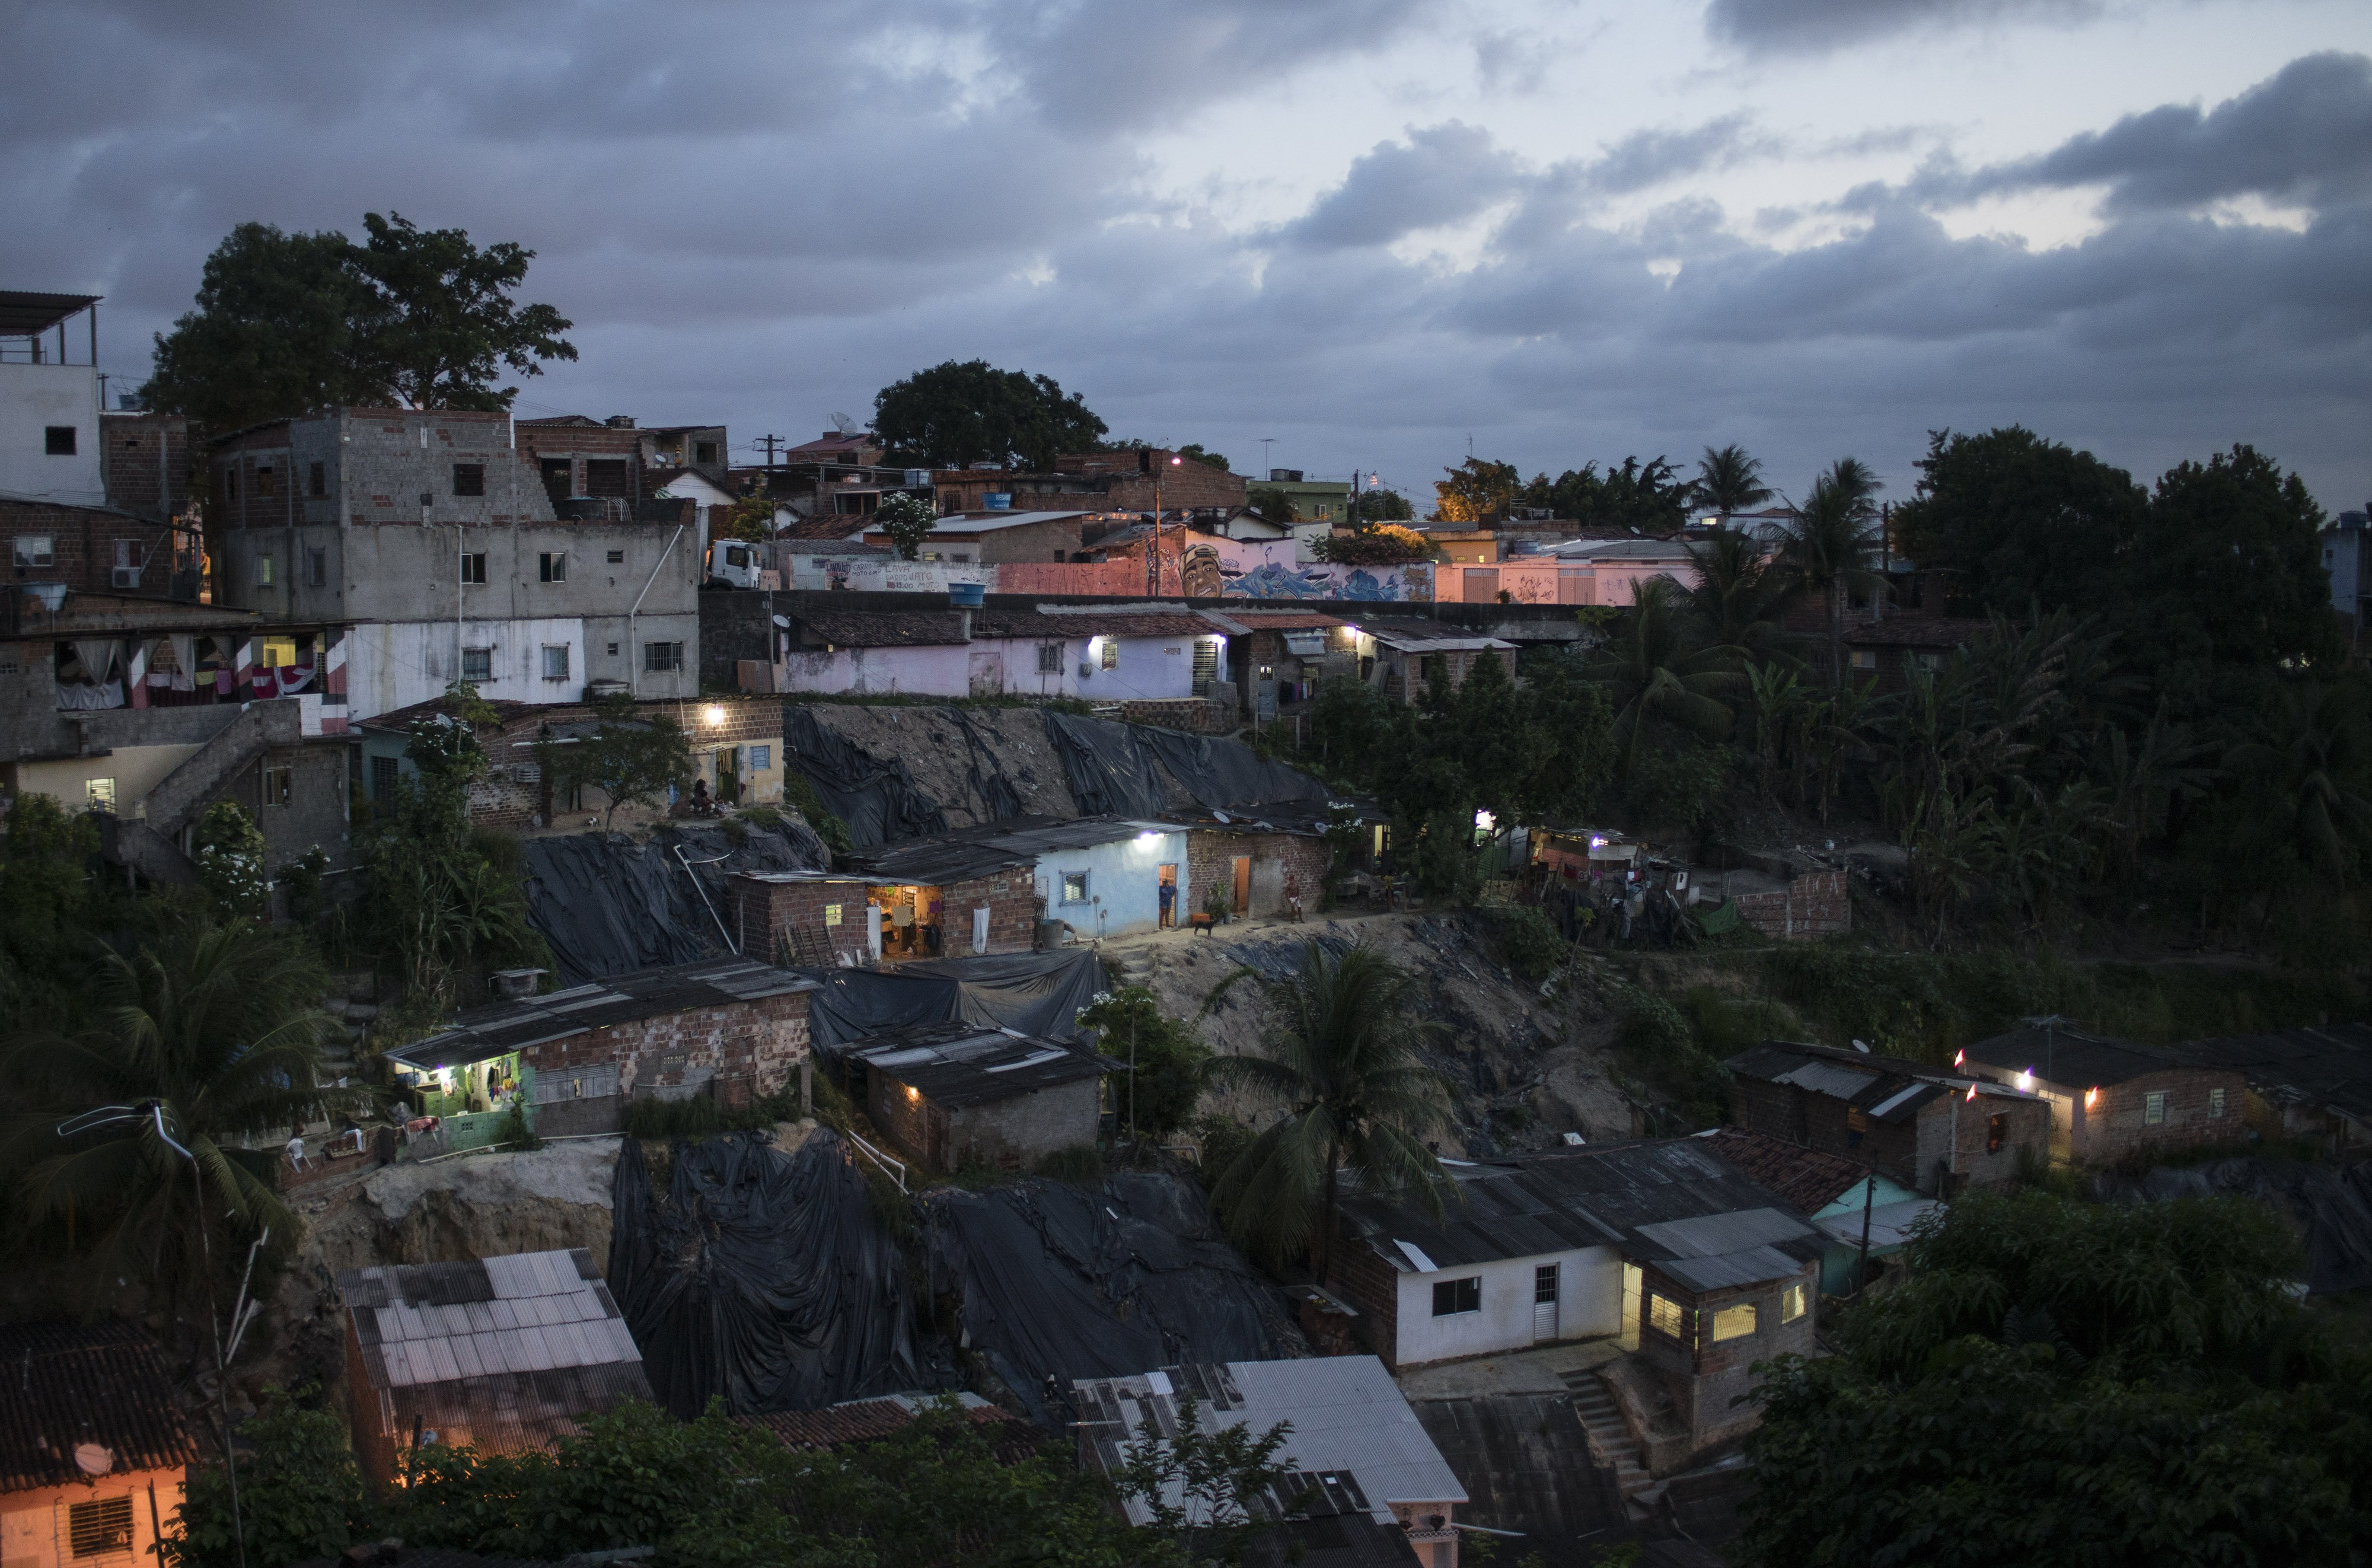 Homes are lit as the sun goes down in Ibura, one of the neighborhoods with the highest numbers of suspected cases of children born with microcephaly in Recife, Brazil, Jan. 27, 2016.